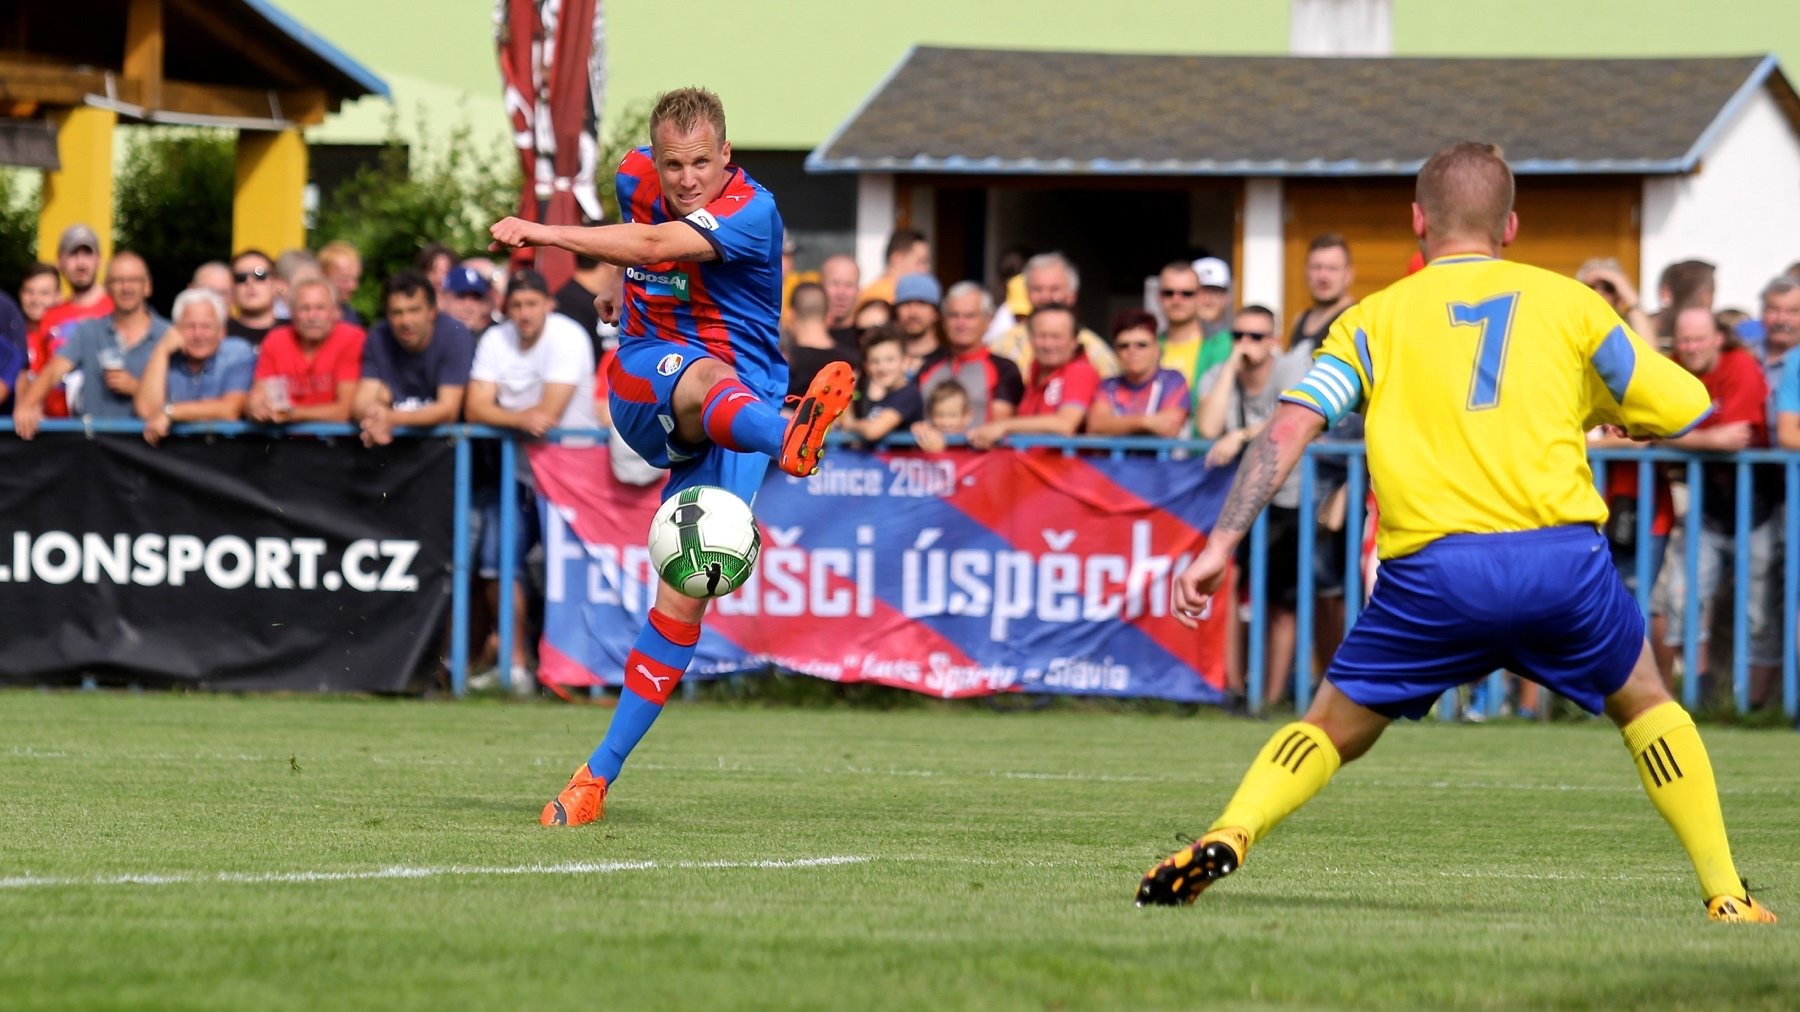 In the first pre-season match Viktoria scored 7 goals against Senco Doubravka